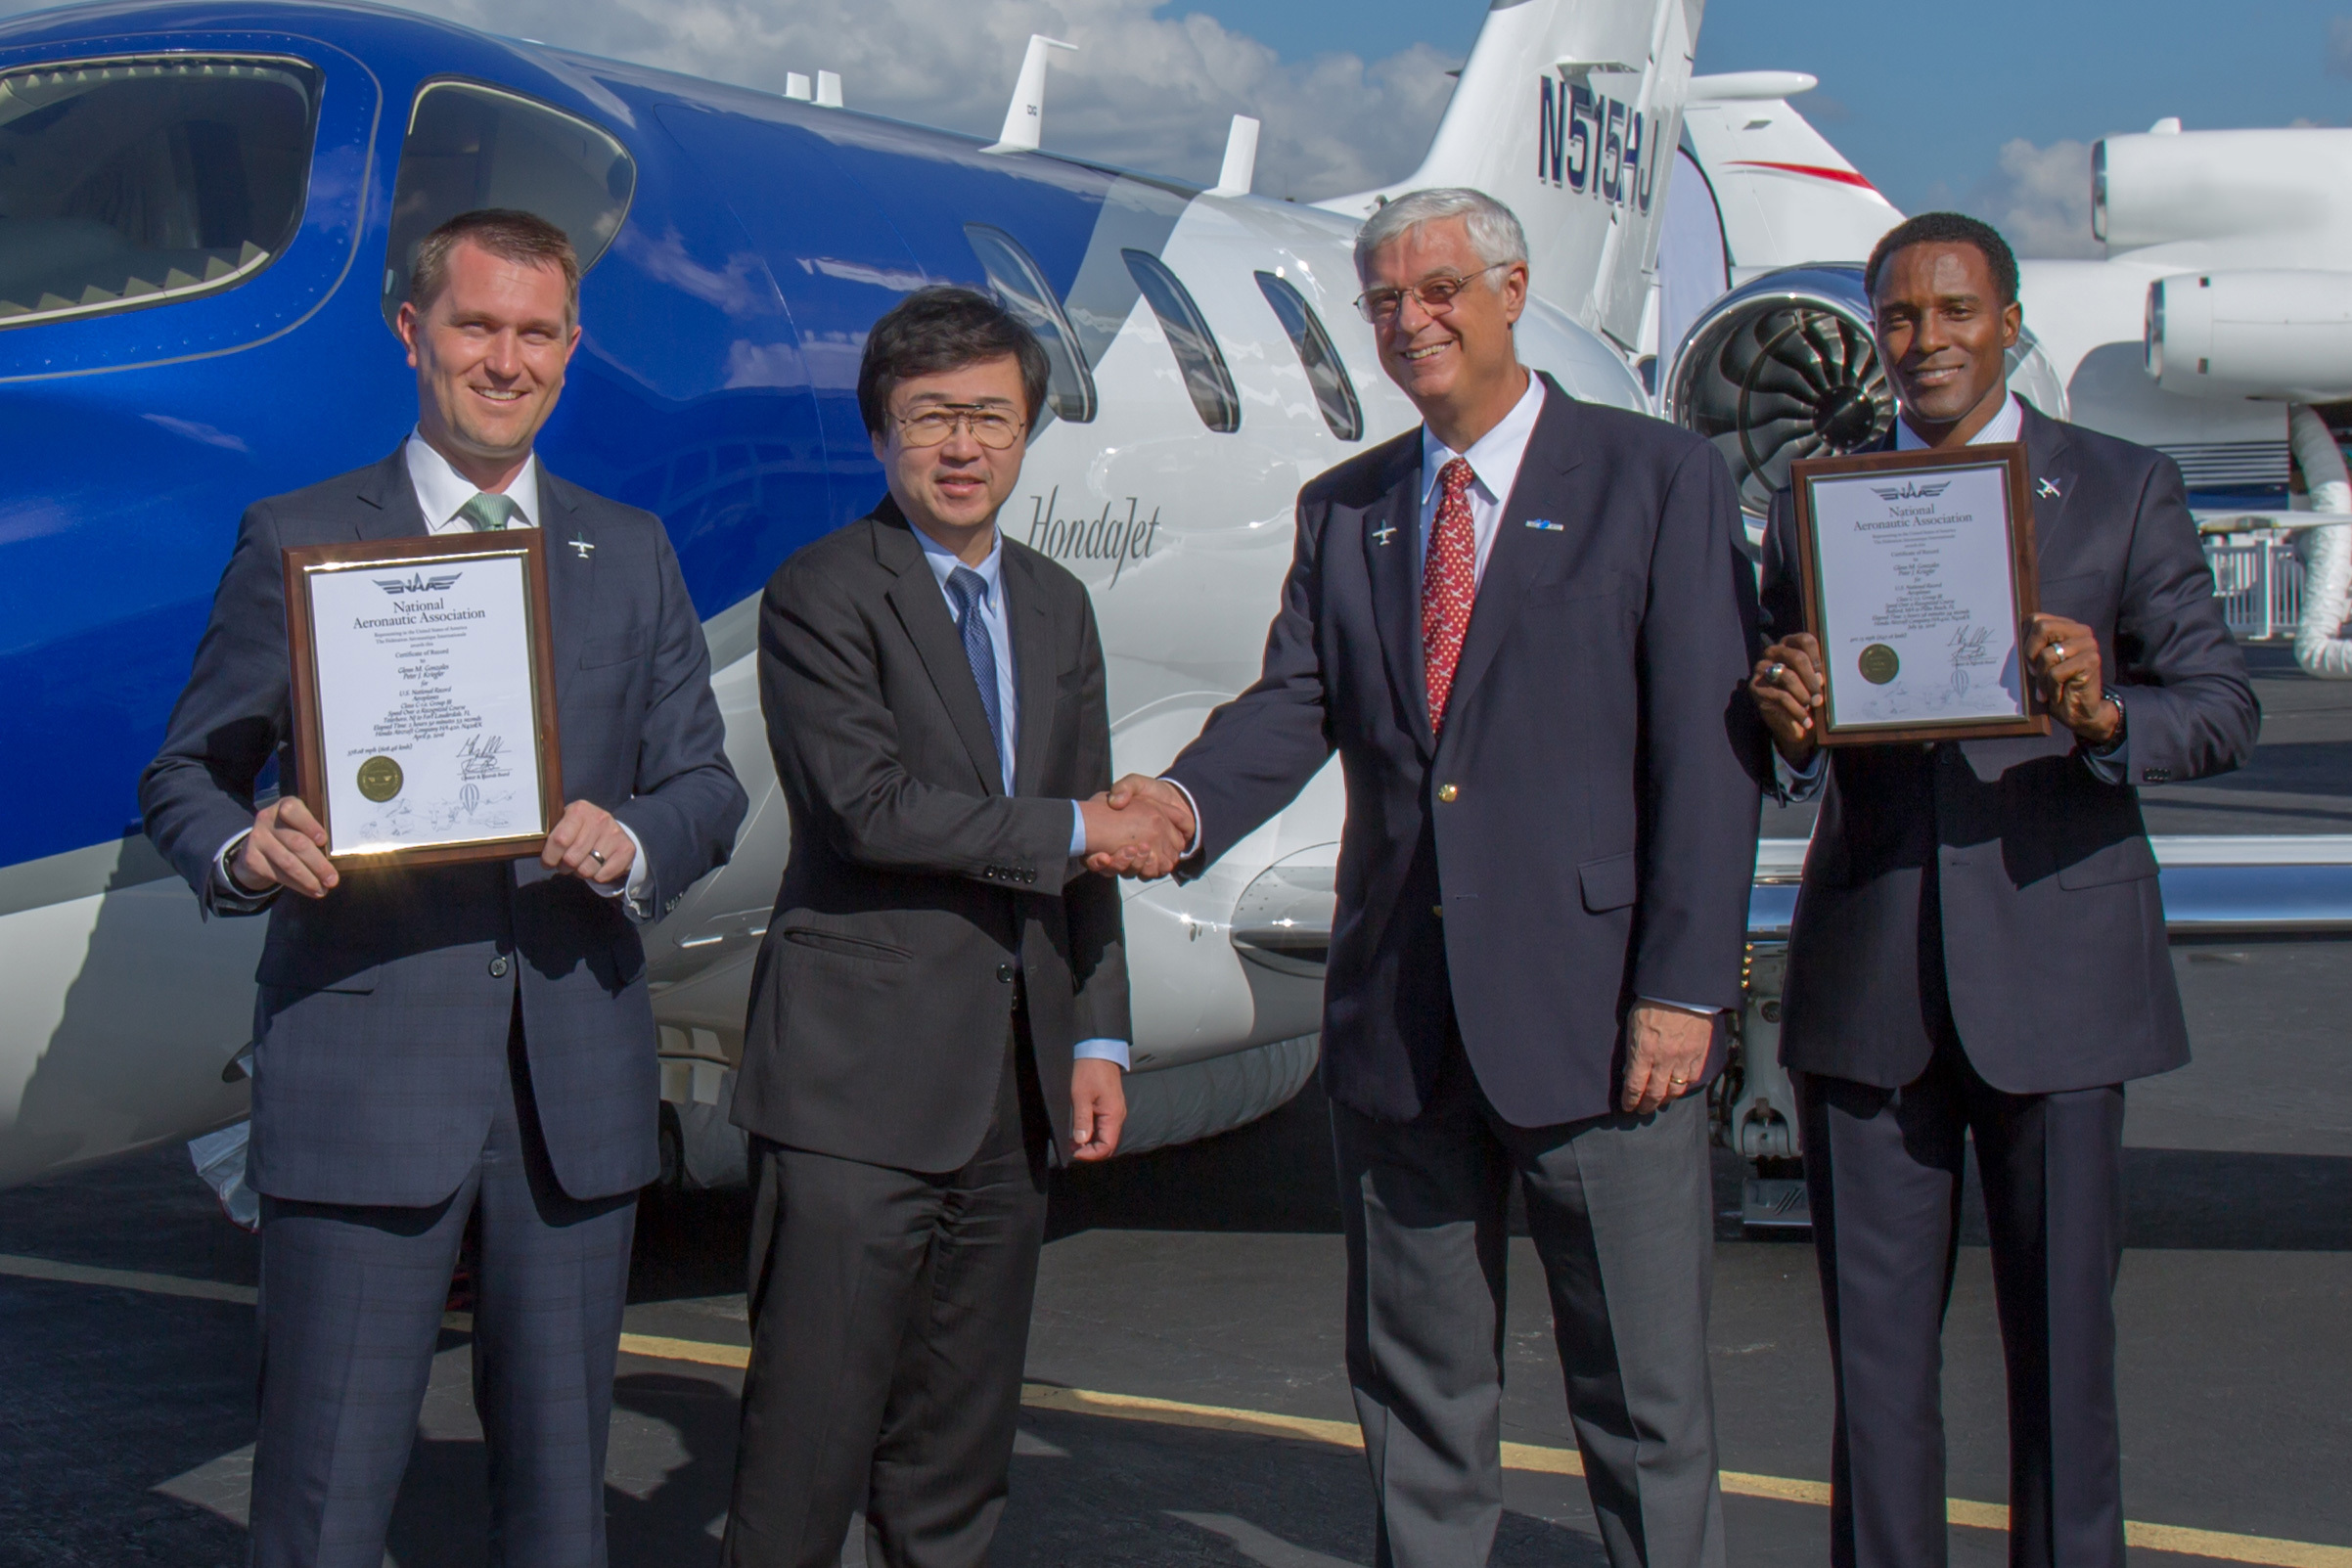 Honda Aircraft Company today announced that the HondaJet has officially secured its first speed records over two recognized courses from Teterboro, New Jersey to Fort Lauderdale, Florida and Boston, Massachusetts to Palm Beach, Florida. (Left to Right: Honda Aircraft Director of Sales, U.S. & Canada, Peter Kriegler, Honda Aircraft President and CEO Michimasa Fujino, National Aeronautic Association President and CEO Greg Principato and Honda Aircraft Regional Sales Manager Glenn Gonzales) (Photo: Business Wire)